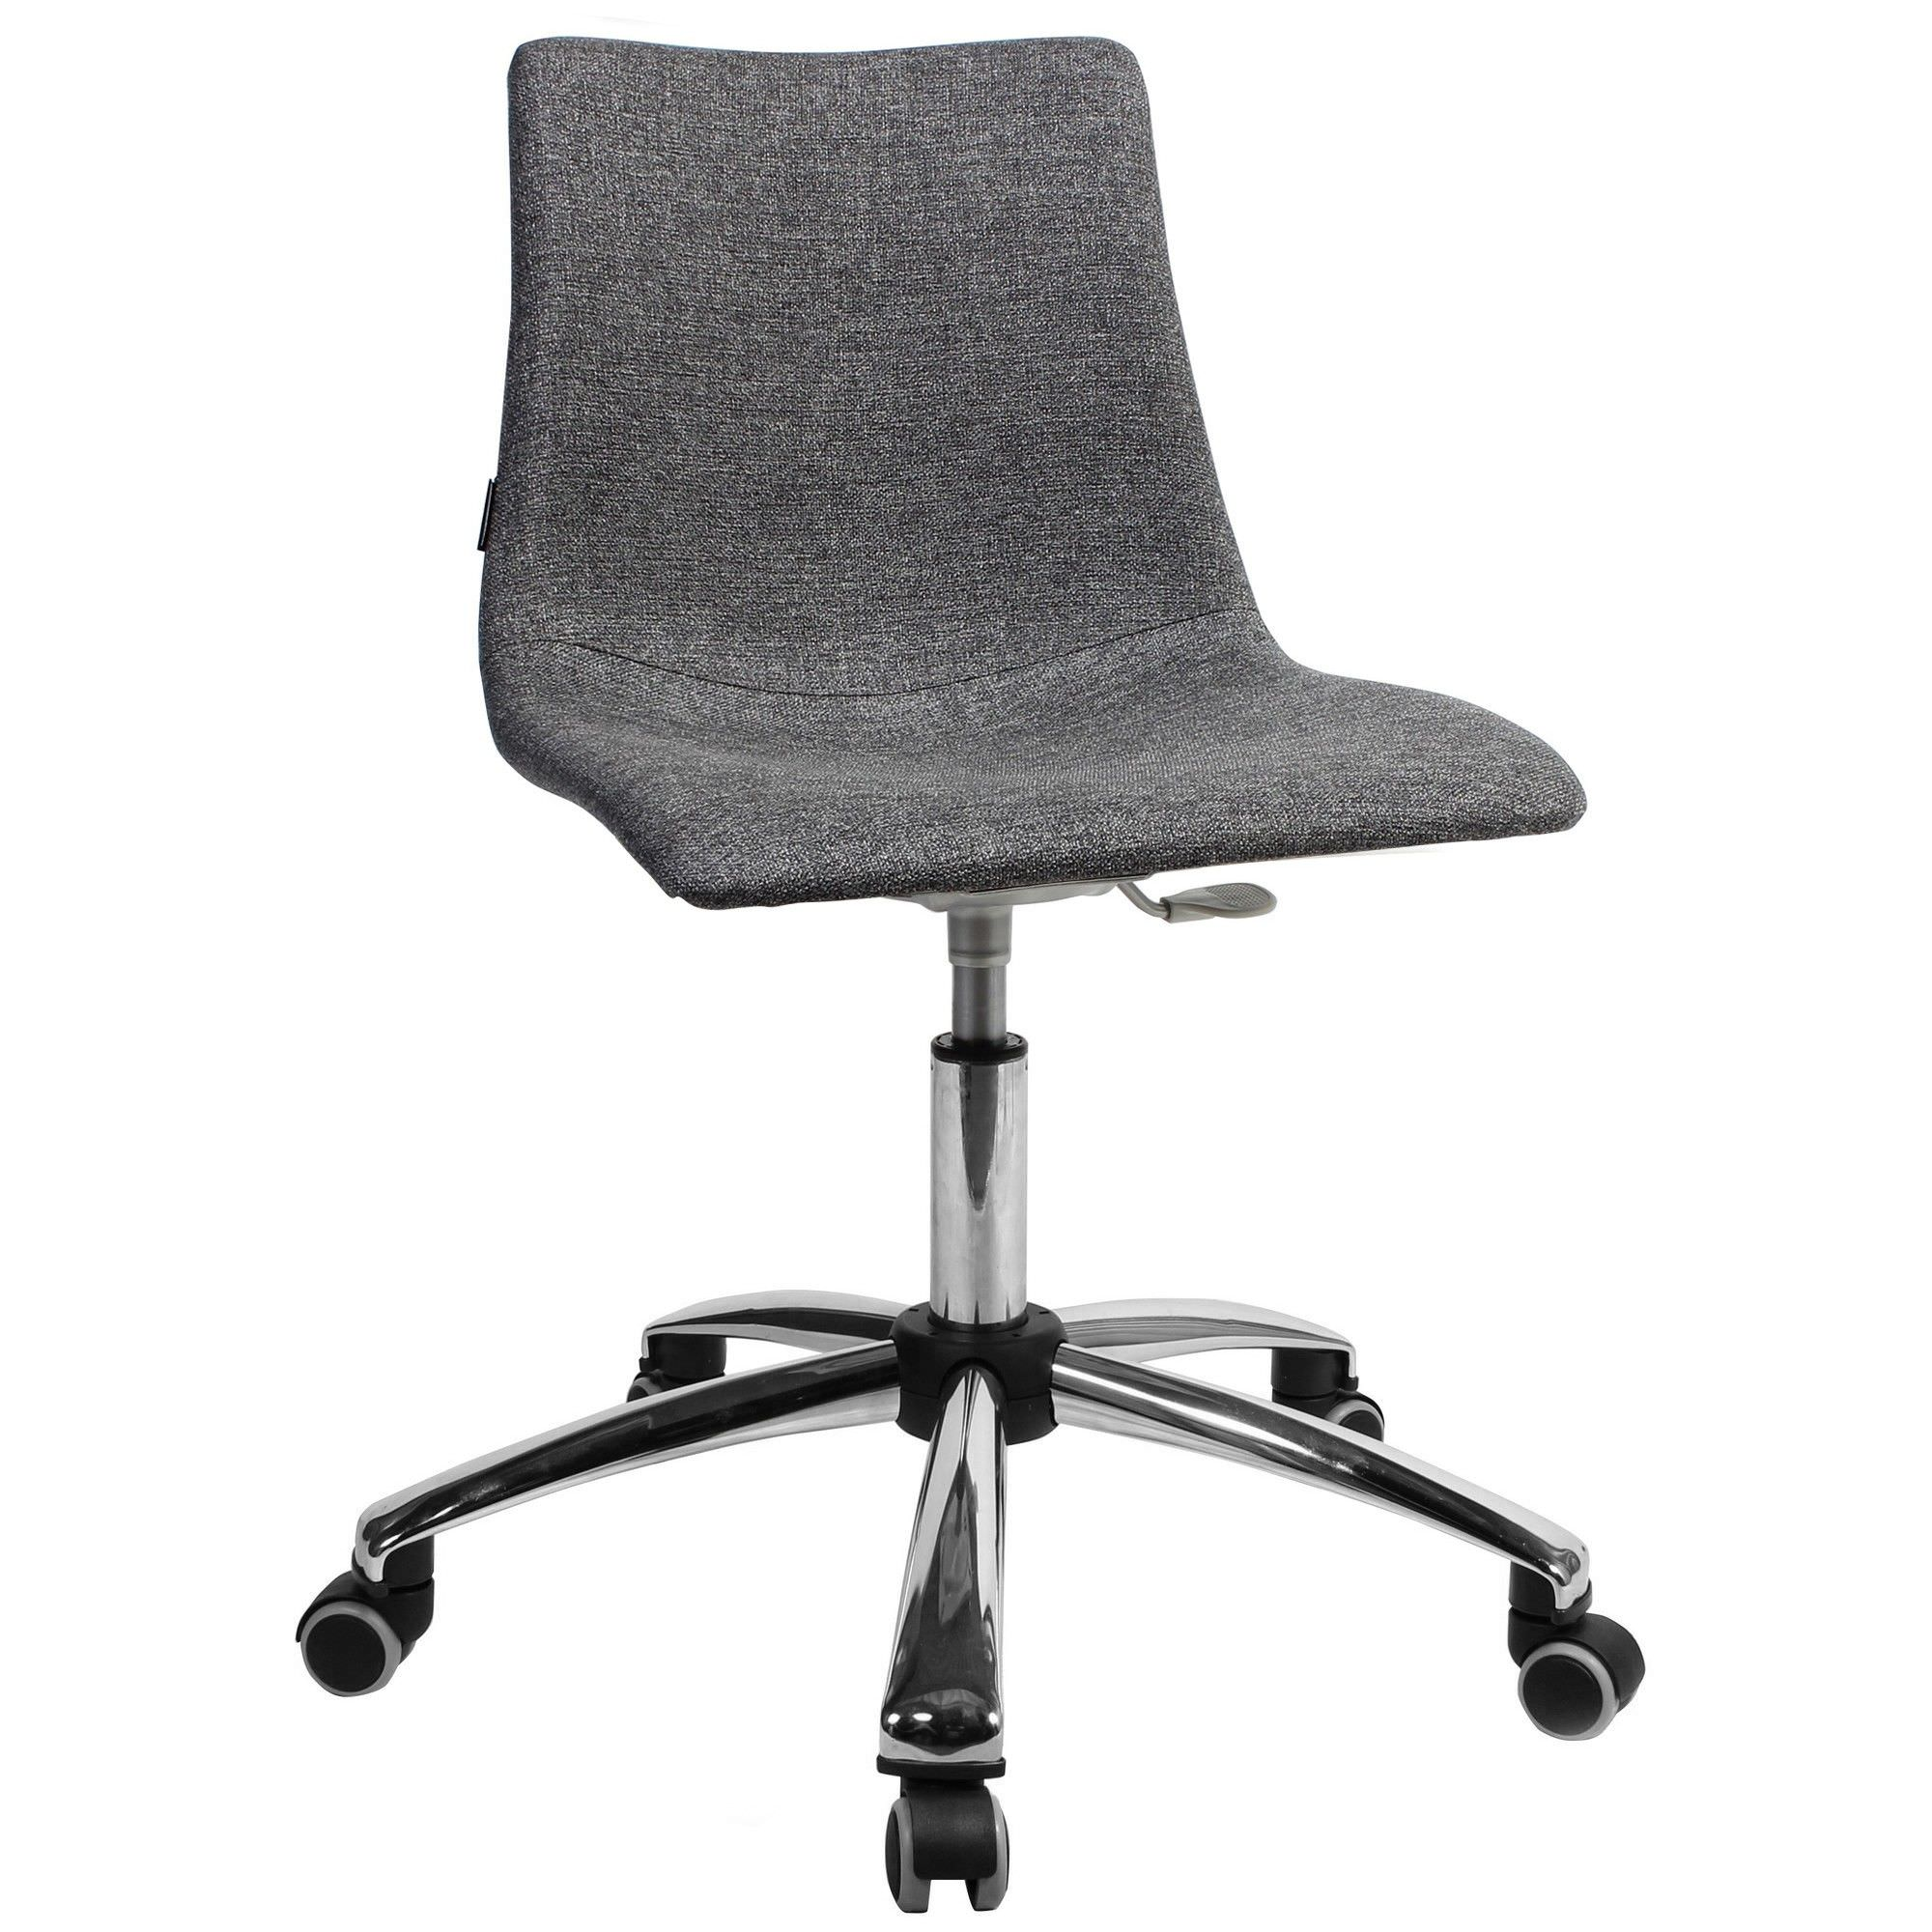 Zebra Pop Italian Made Commercial Grade Gas Lift Fabric Office Chair, Grey